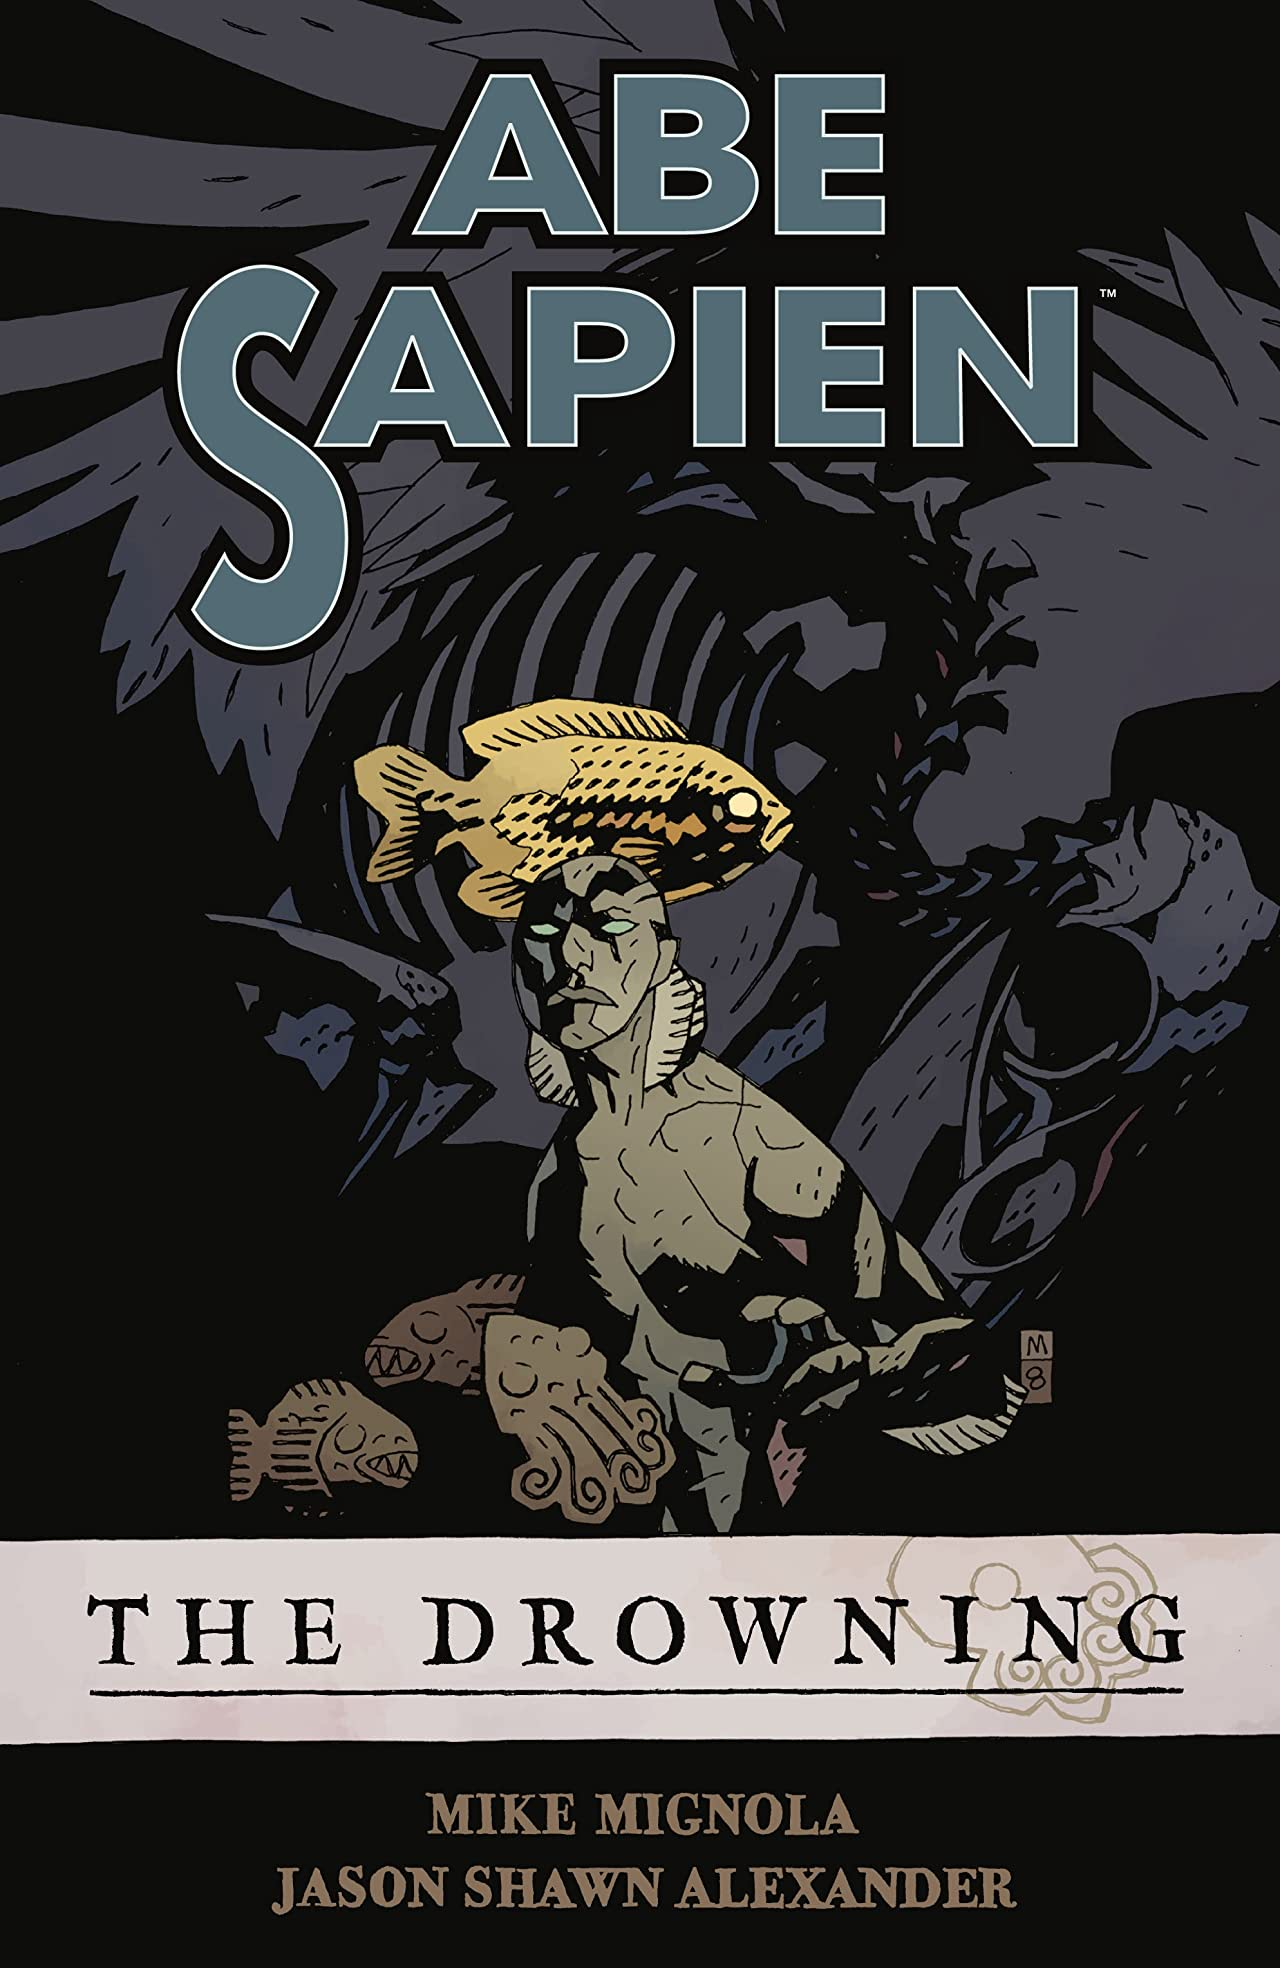 Abe Sapien Vol. 1: The Drowning